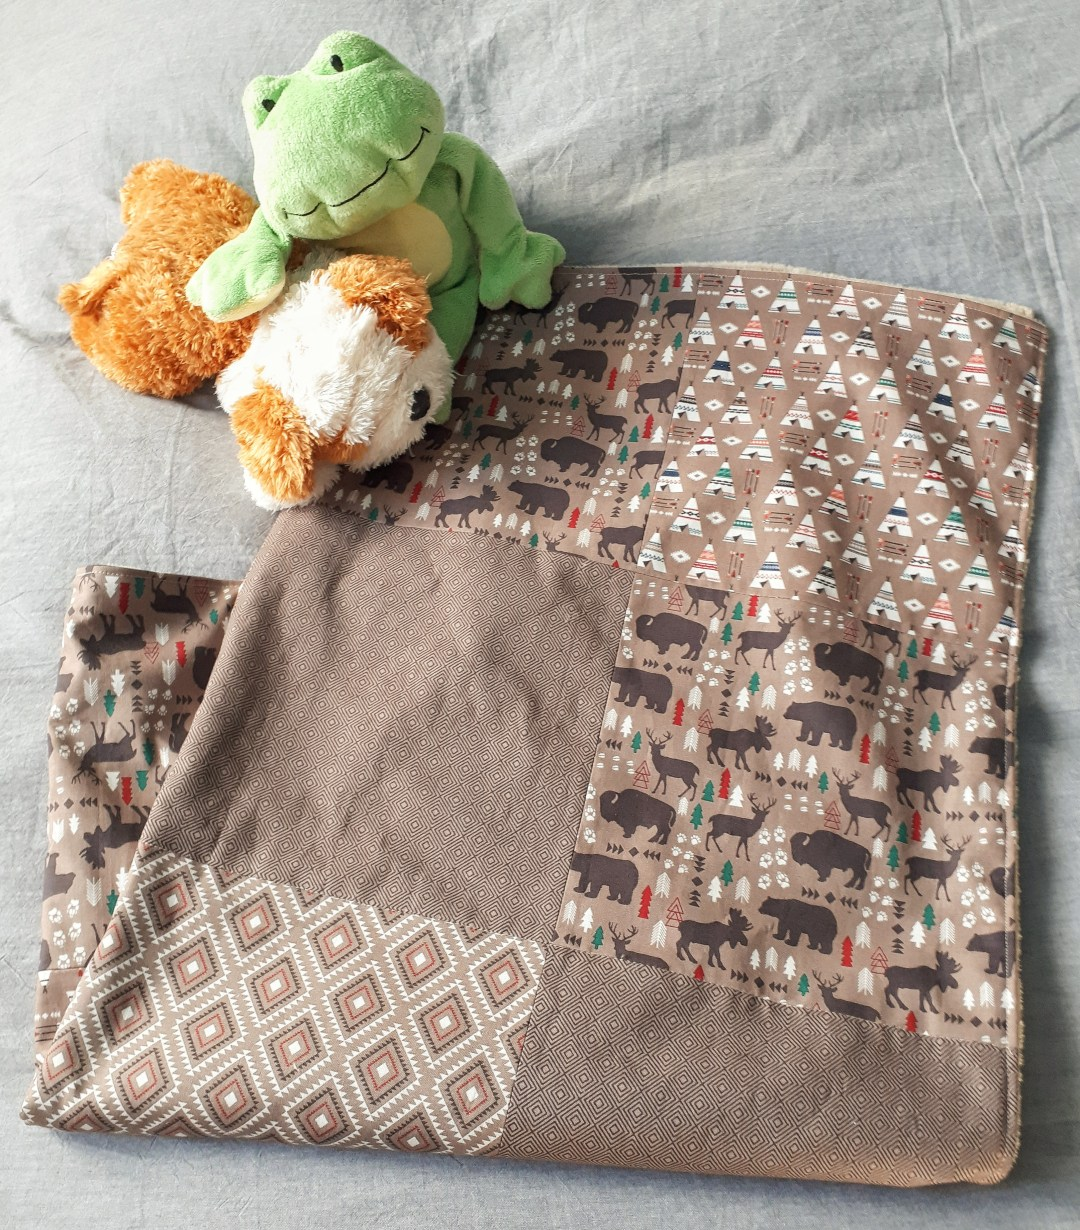 DIY Patchwork baby blanket using 4 fat quarters. A simple tutorial for a great baby shower gift!